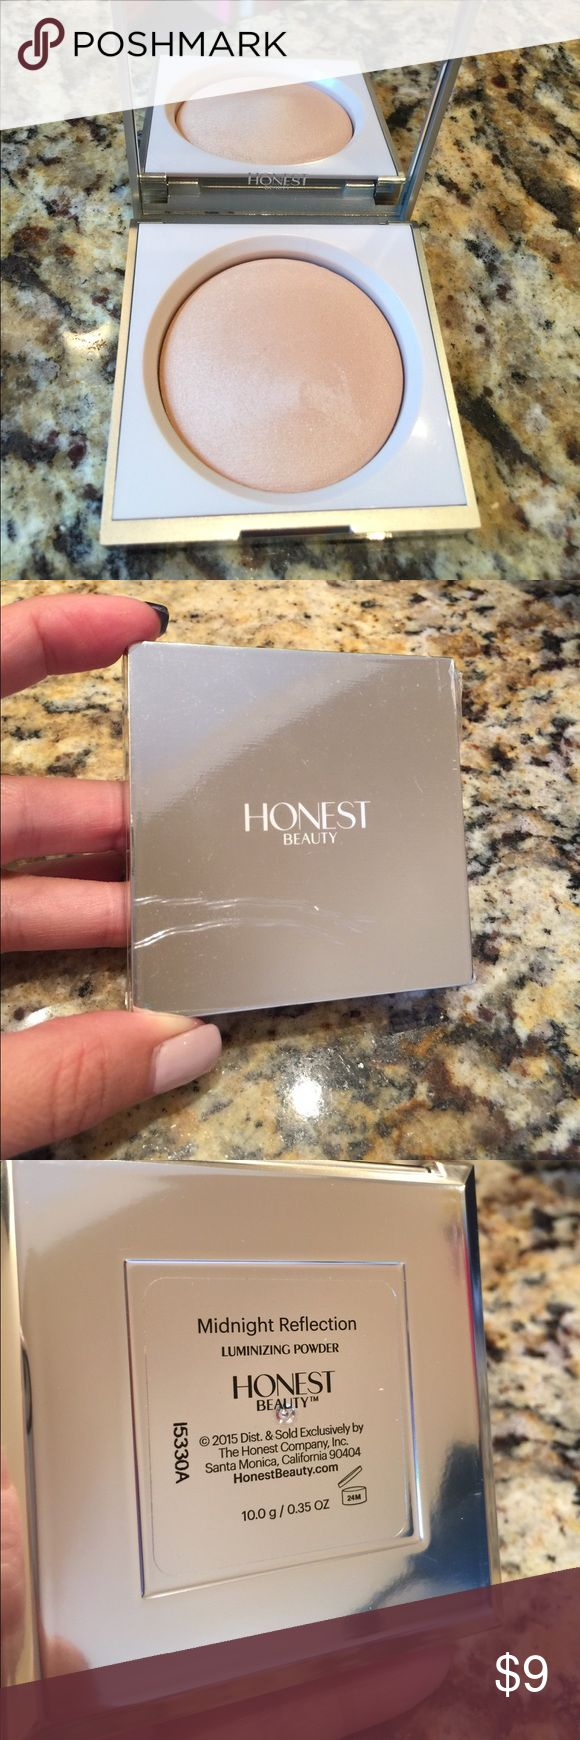 Honest beauty luminizing powder Used only once. Lightweight luminizing powder in midnight reflection. Still has plastic on the top. The Honest Company Makeup Luminizer